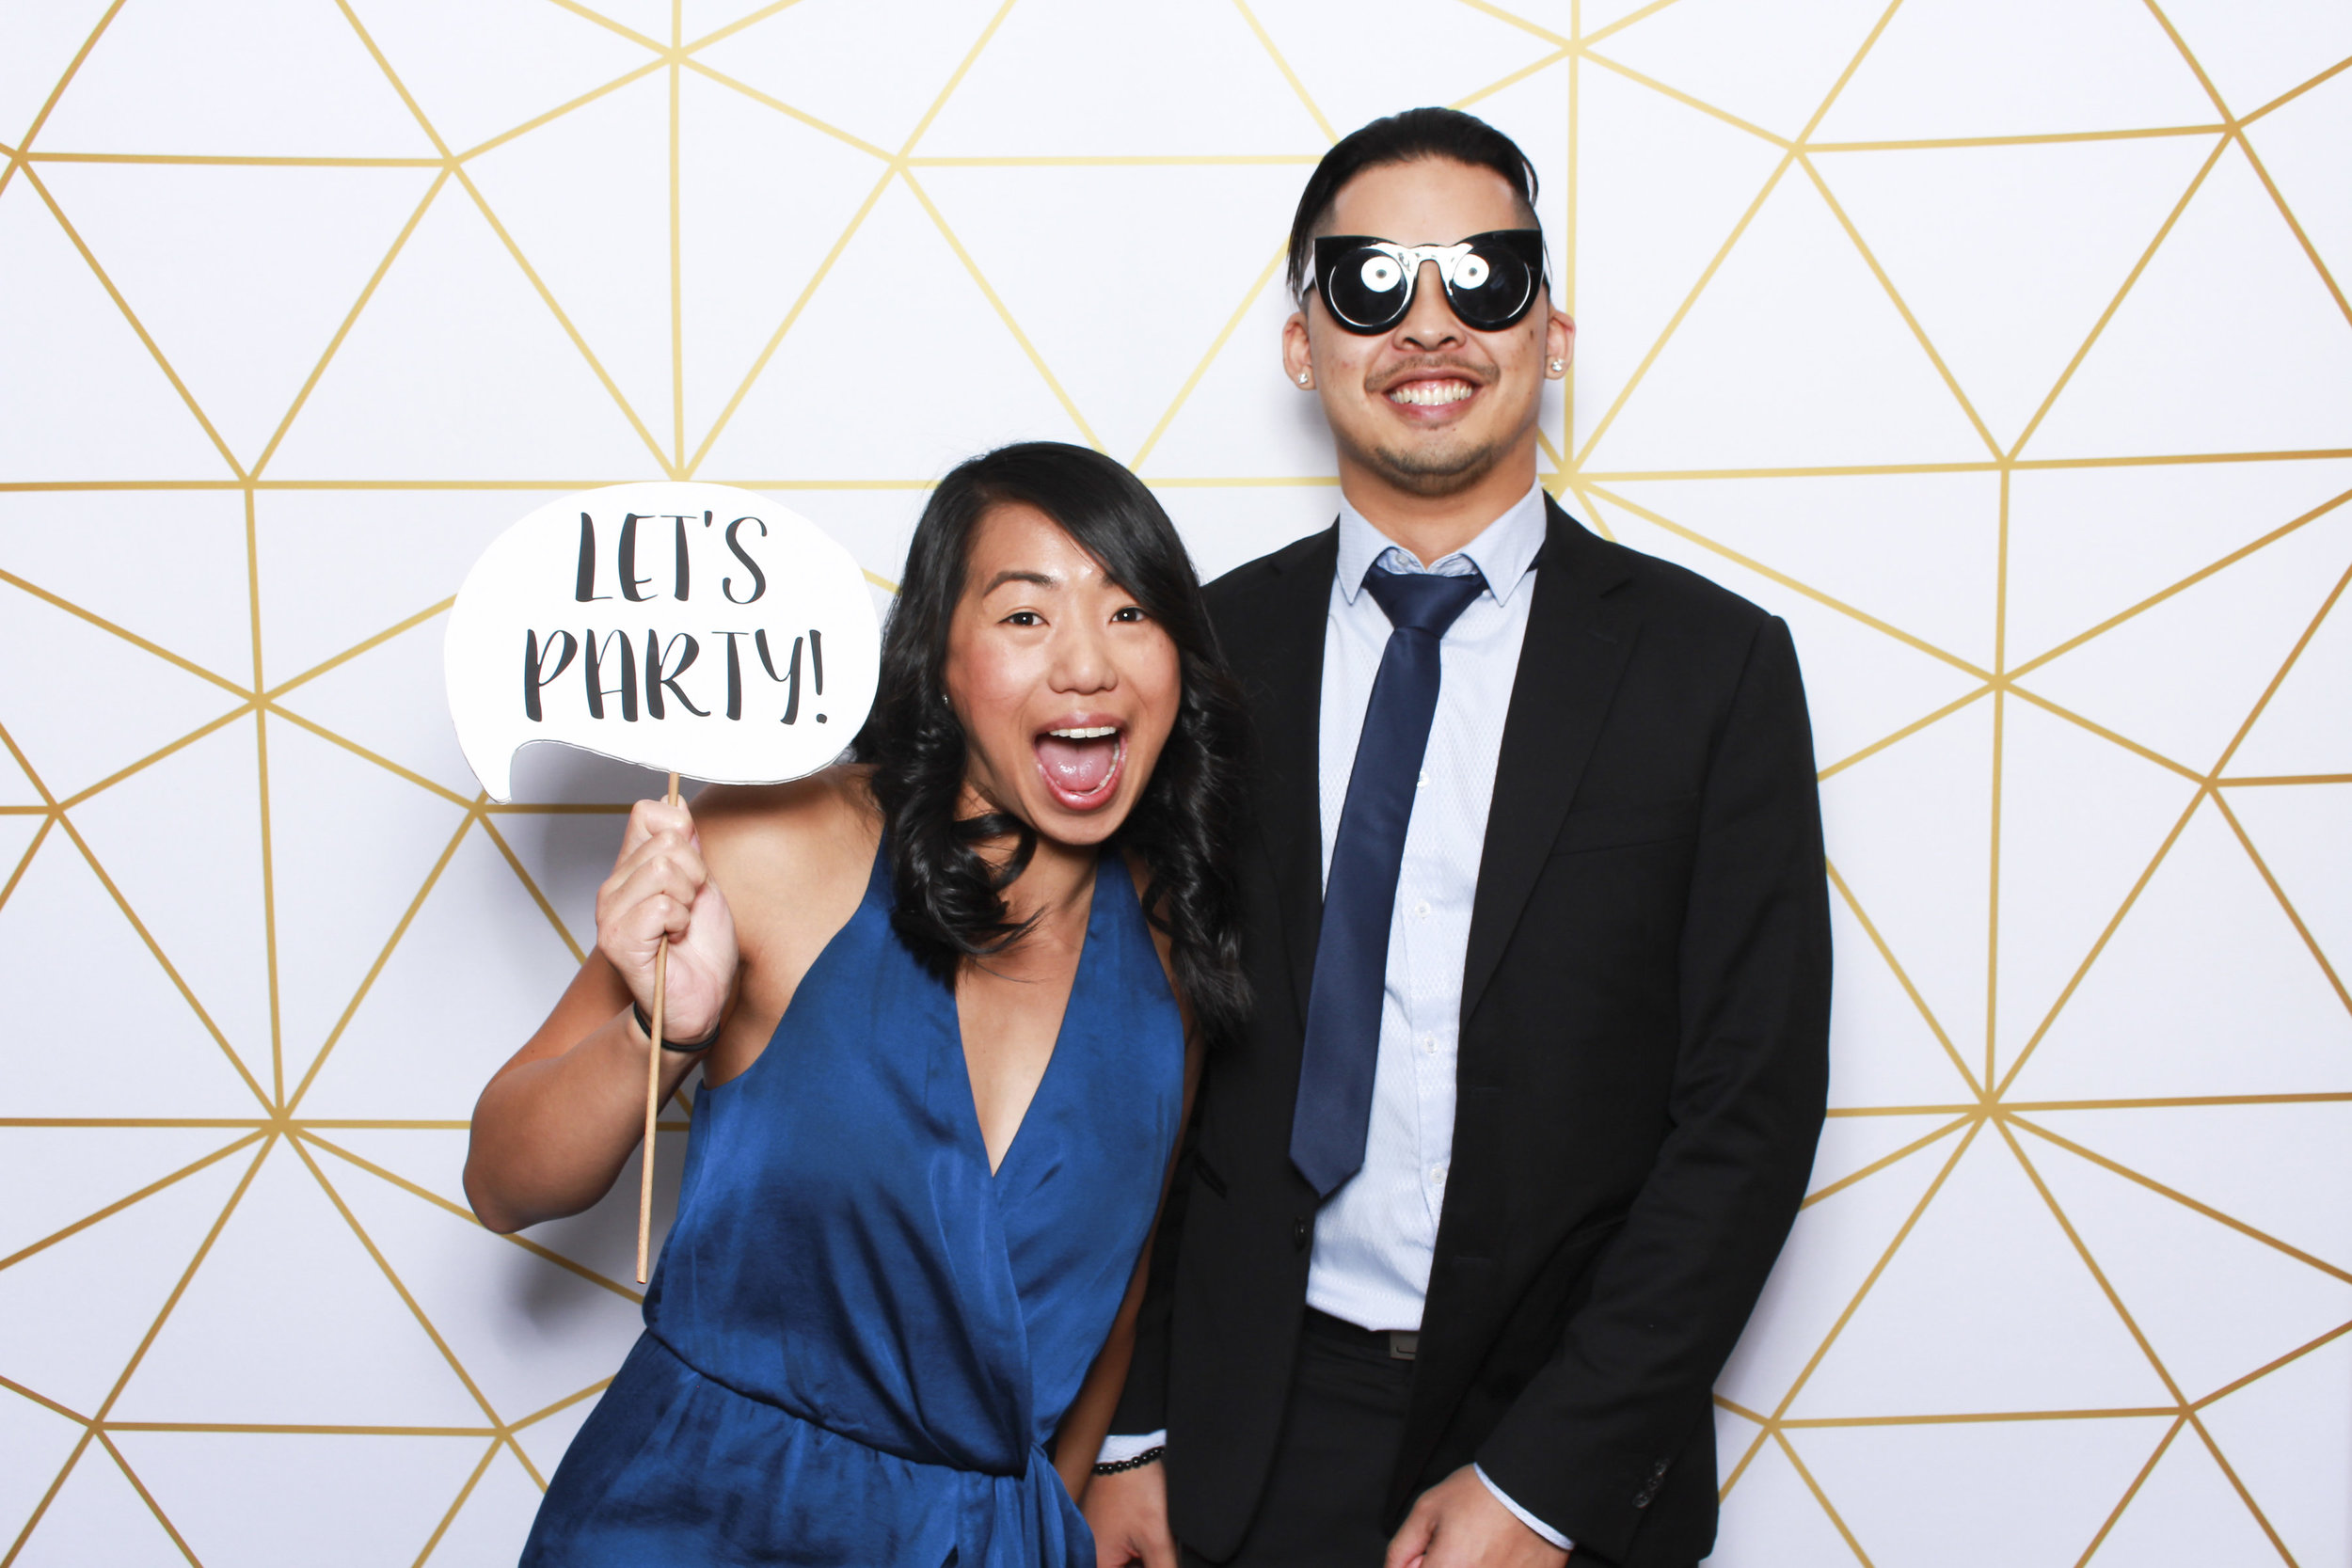 Photo+booth+hire+sydney+wollongong+deco 2.jpg